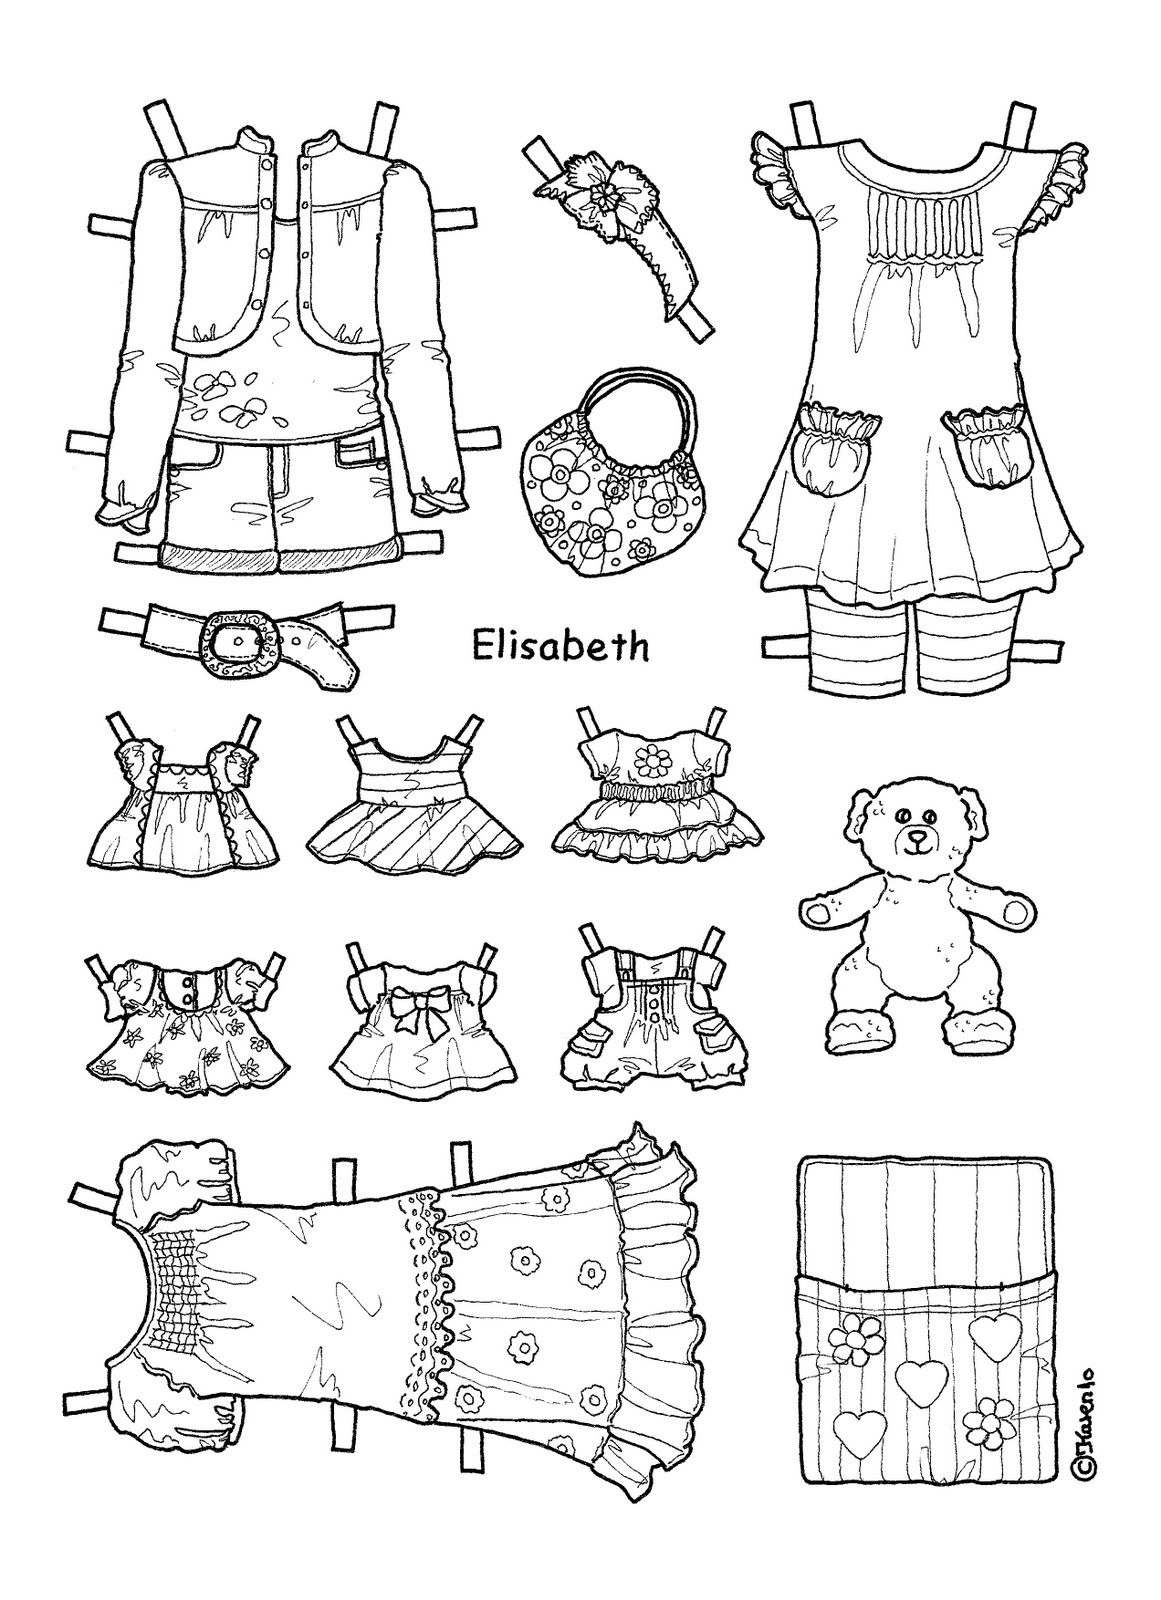 elisabeth paperdoll Colouring Pages